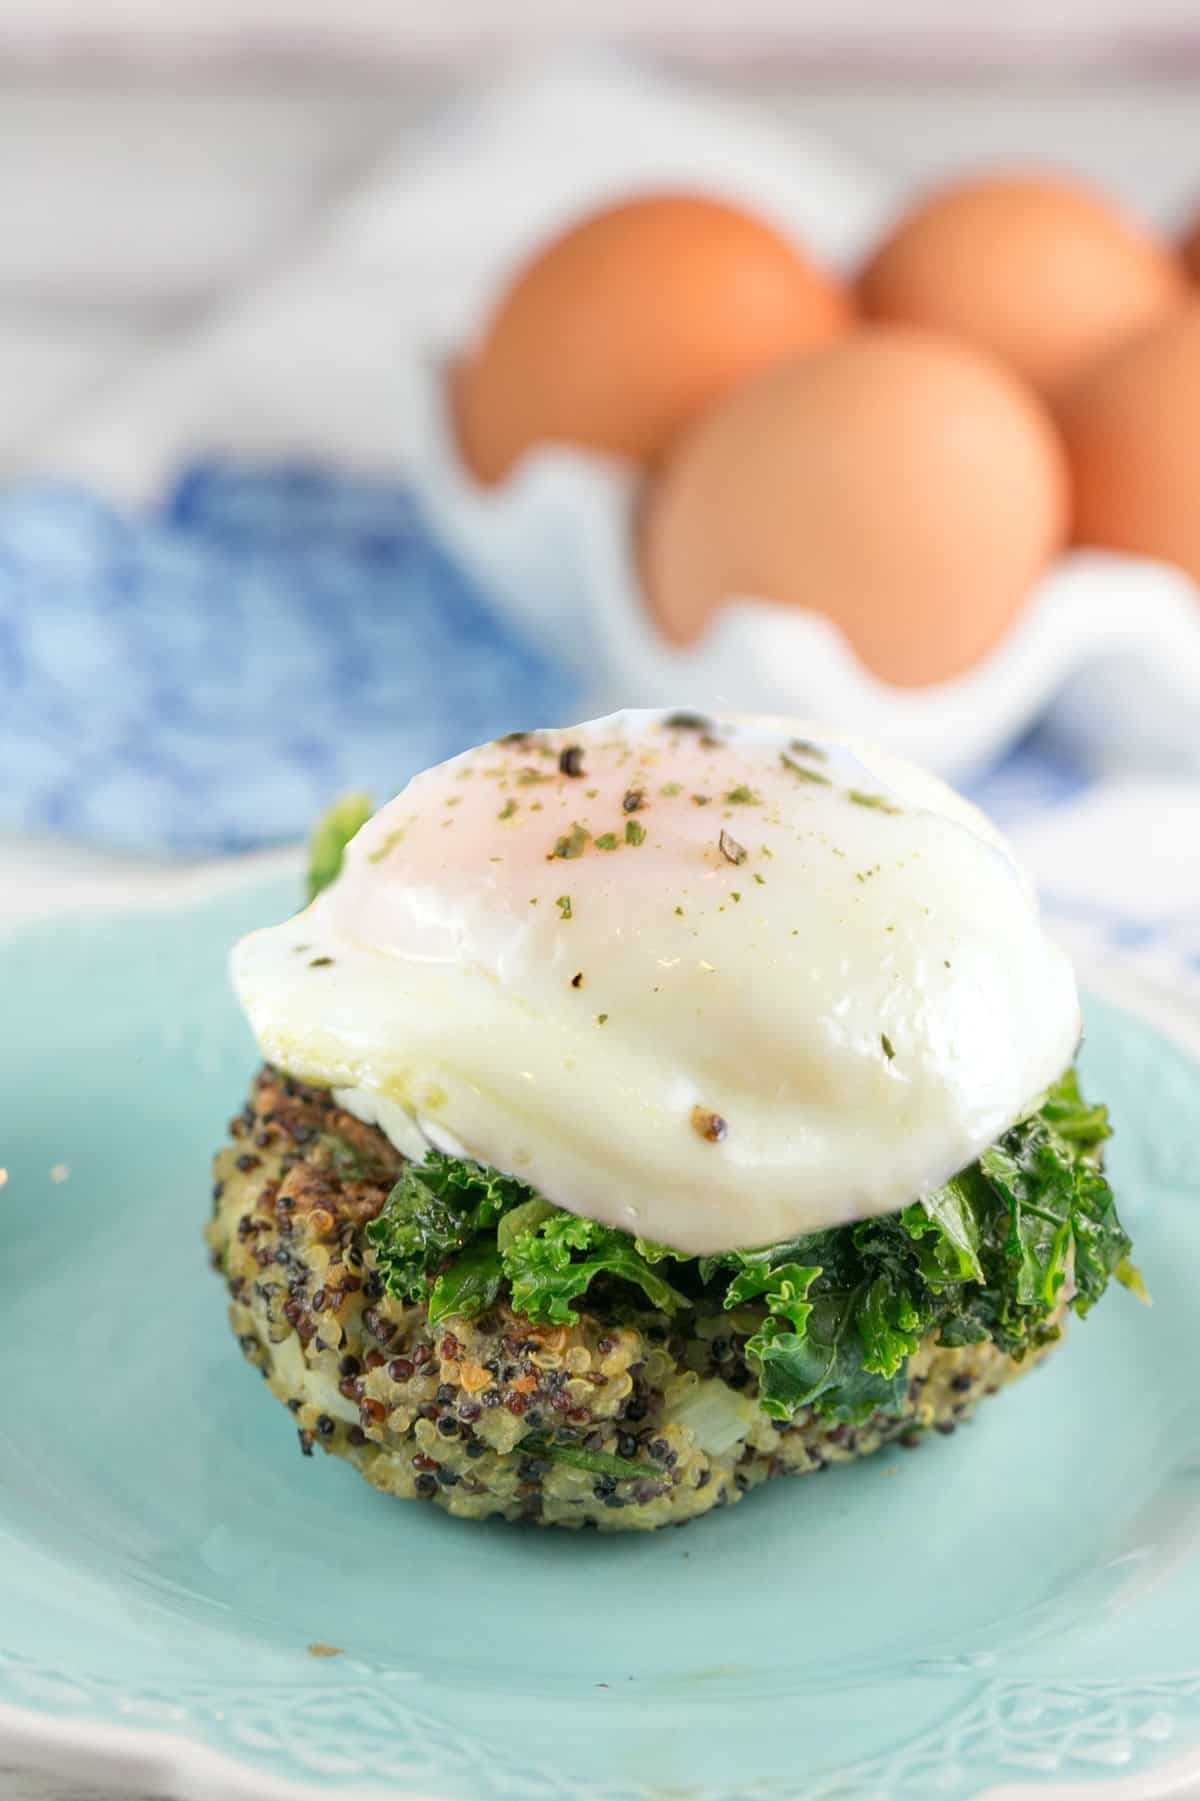 side view of a tricolored quinoa cake covered in kale and a poached egg on a blue plate